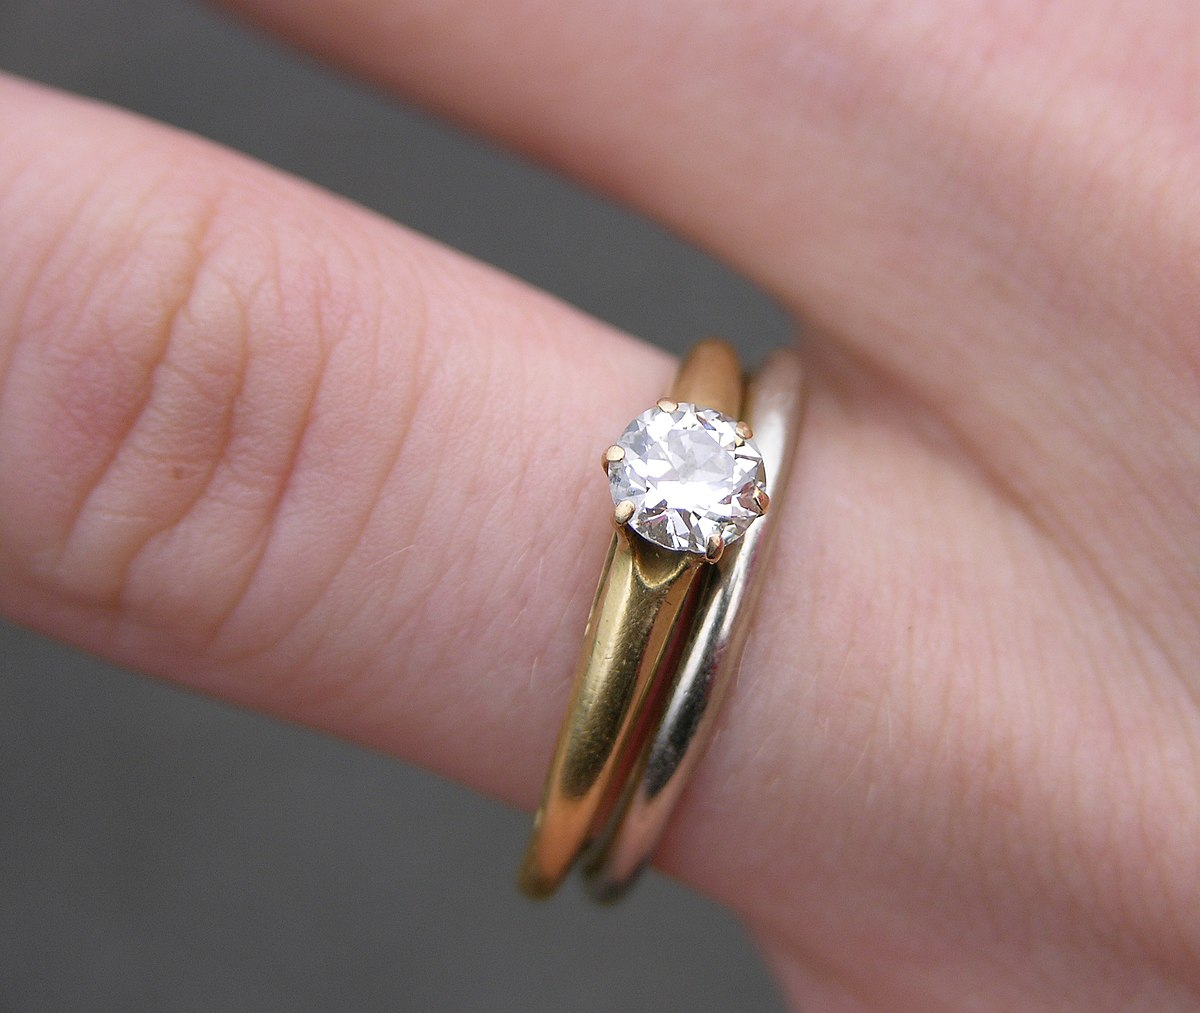 engagement ring wikipedia - Wedding Rings And Engagement Rings